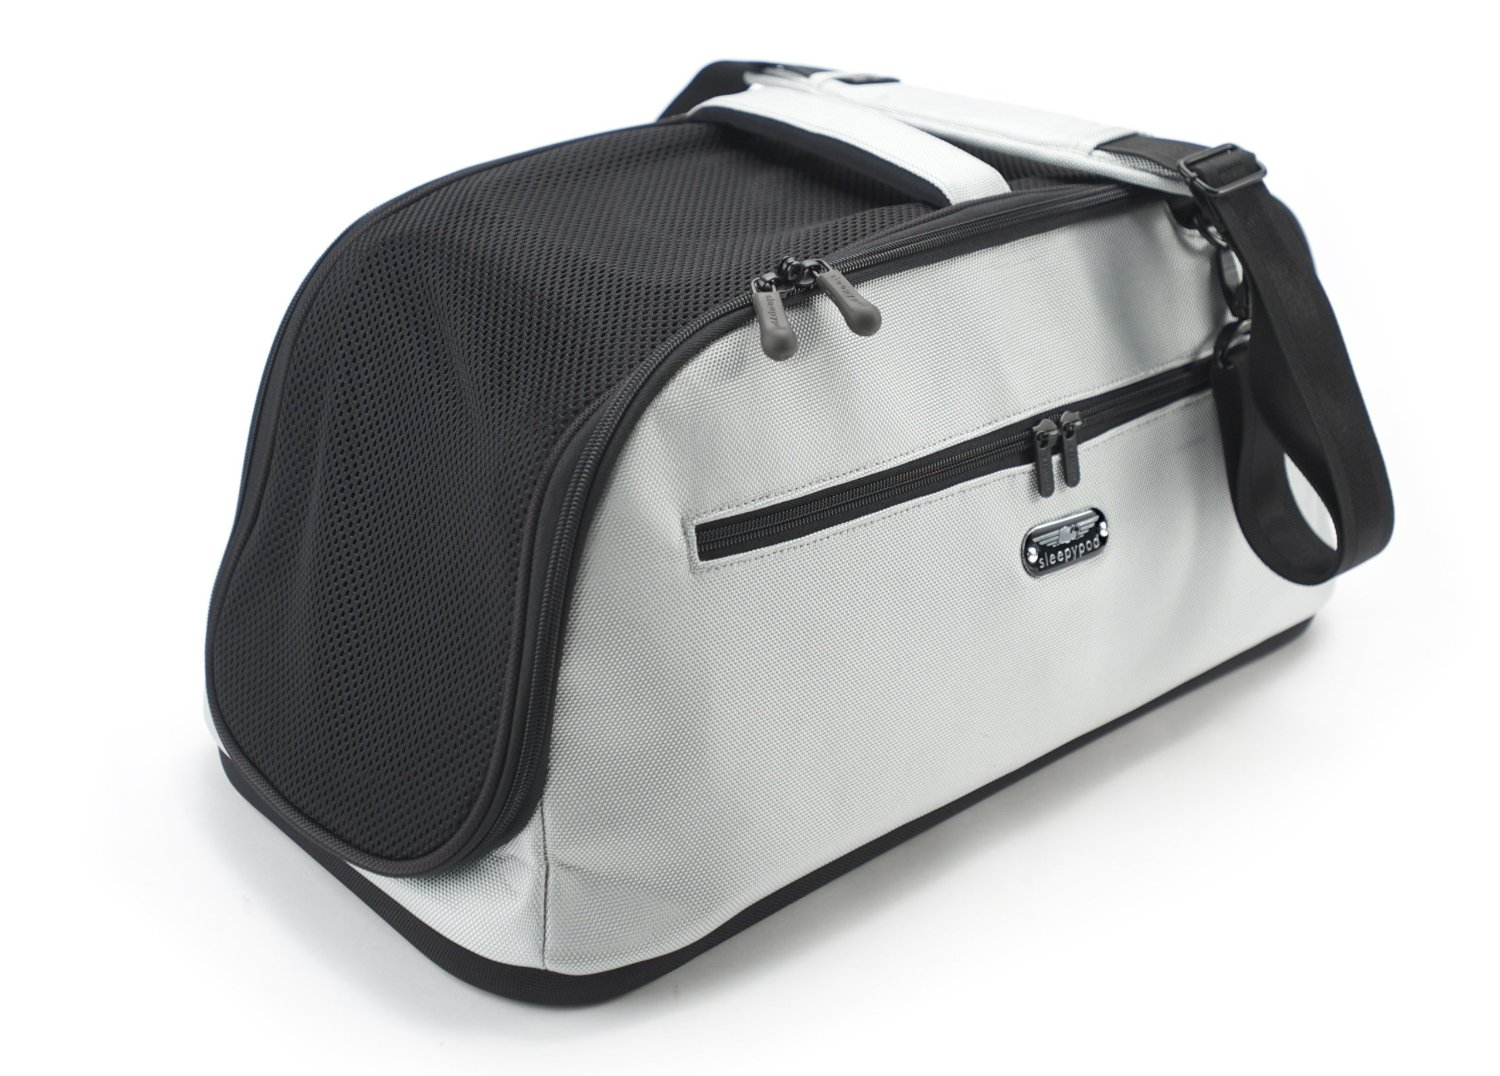 Best Pet Carriers for Air Travel Reviews UK 2018 - Top 5 Reviewed